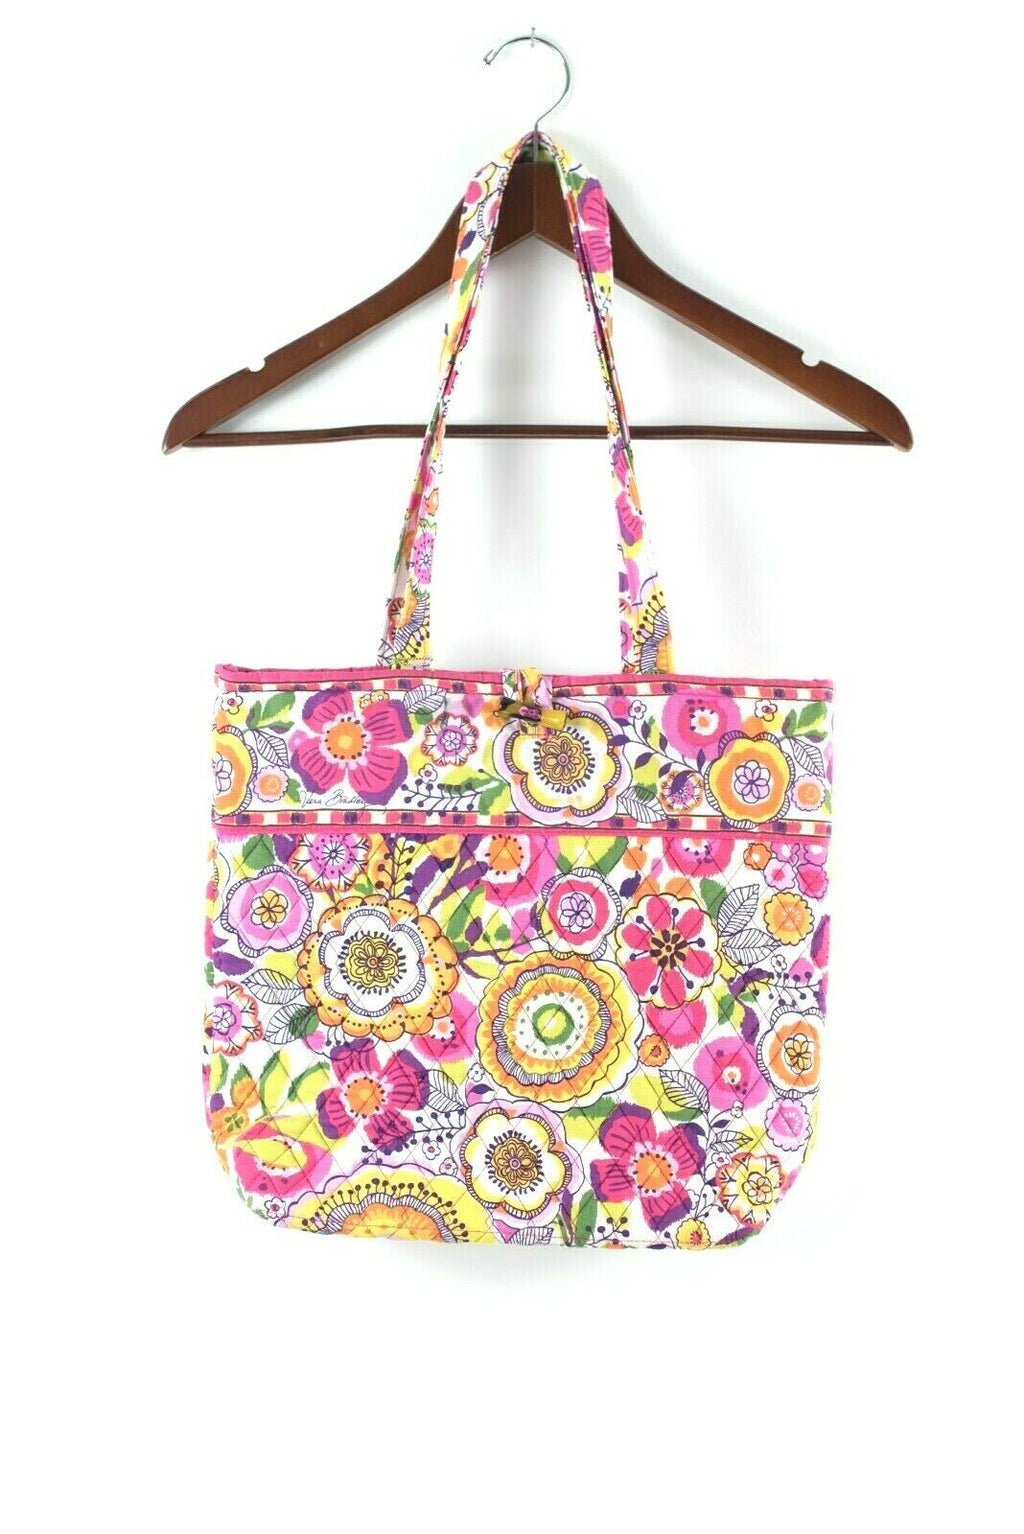 Vera Bradley Womens Pink Purse Retro Floral Graphic Quilted Cotton Tote Bag NWT